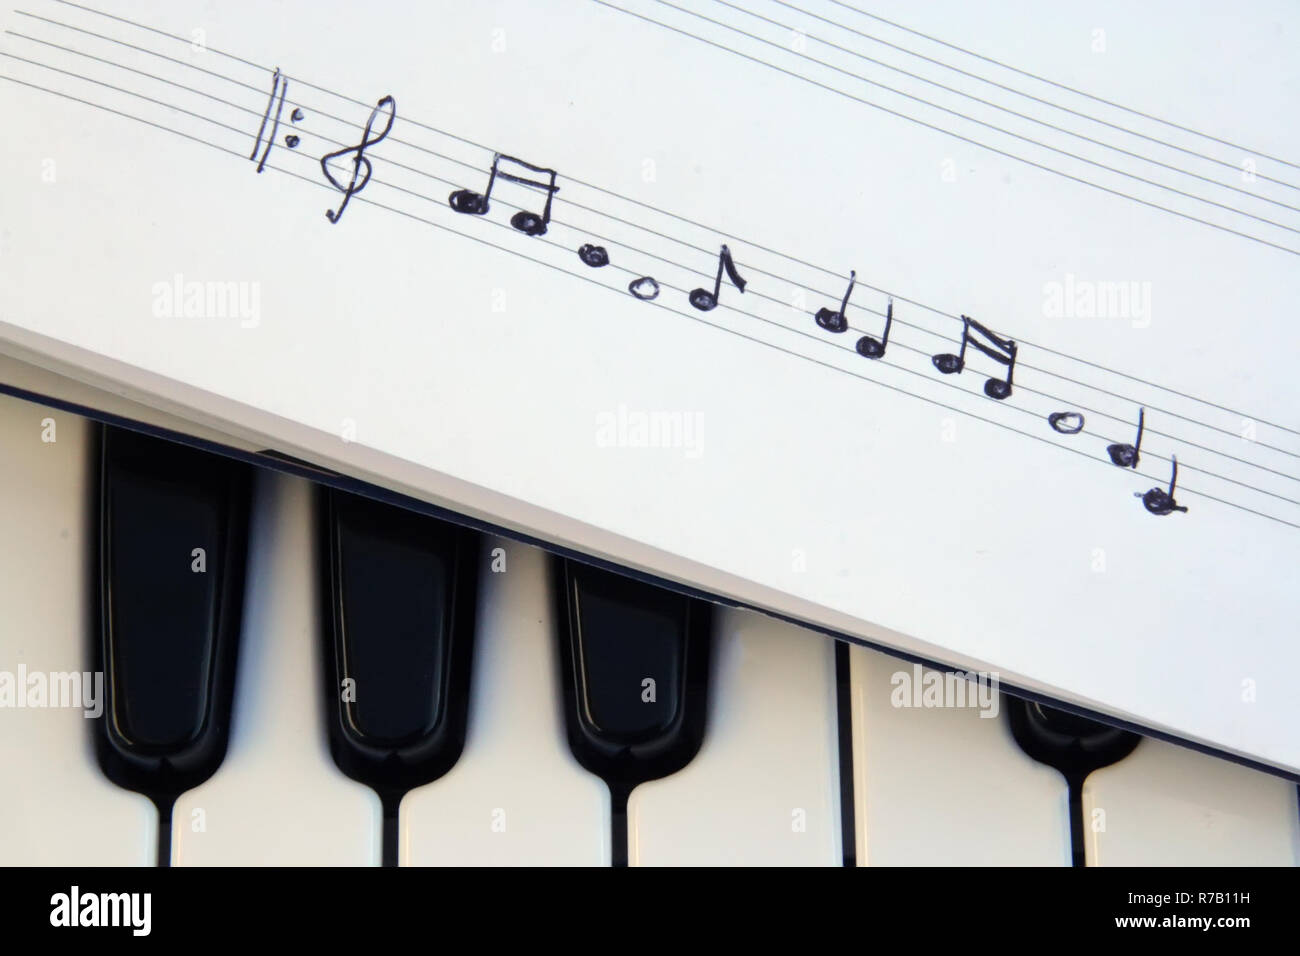 Piano keyboard and musical notes. Musical notes on a piano keyboard. - Stock Image